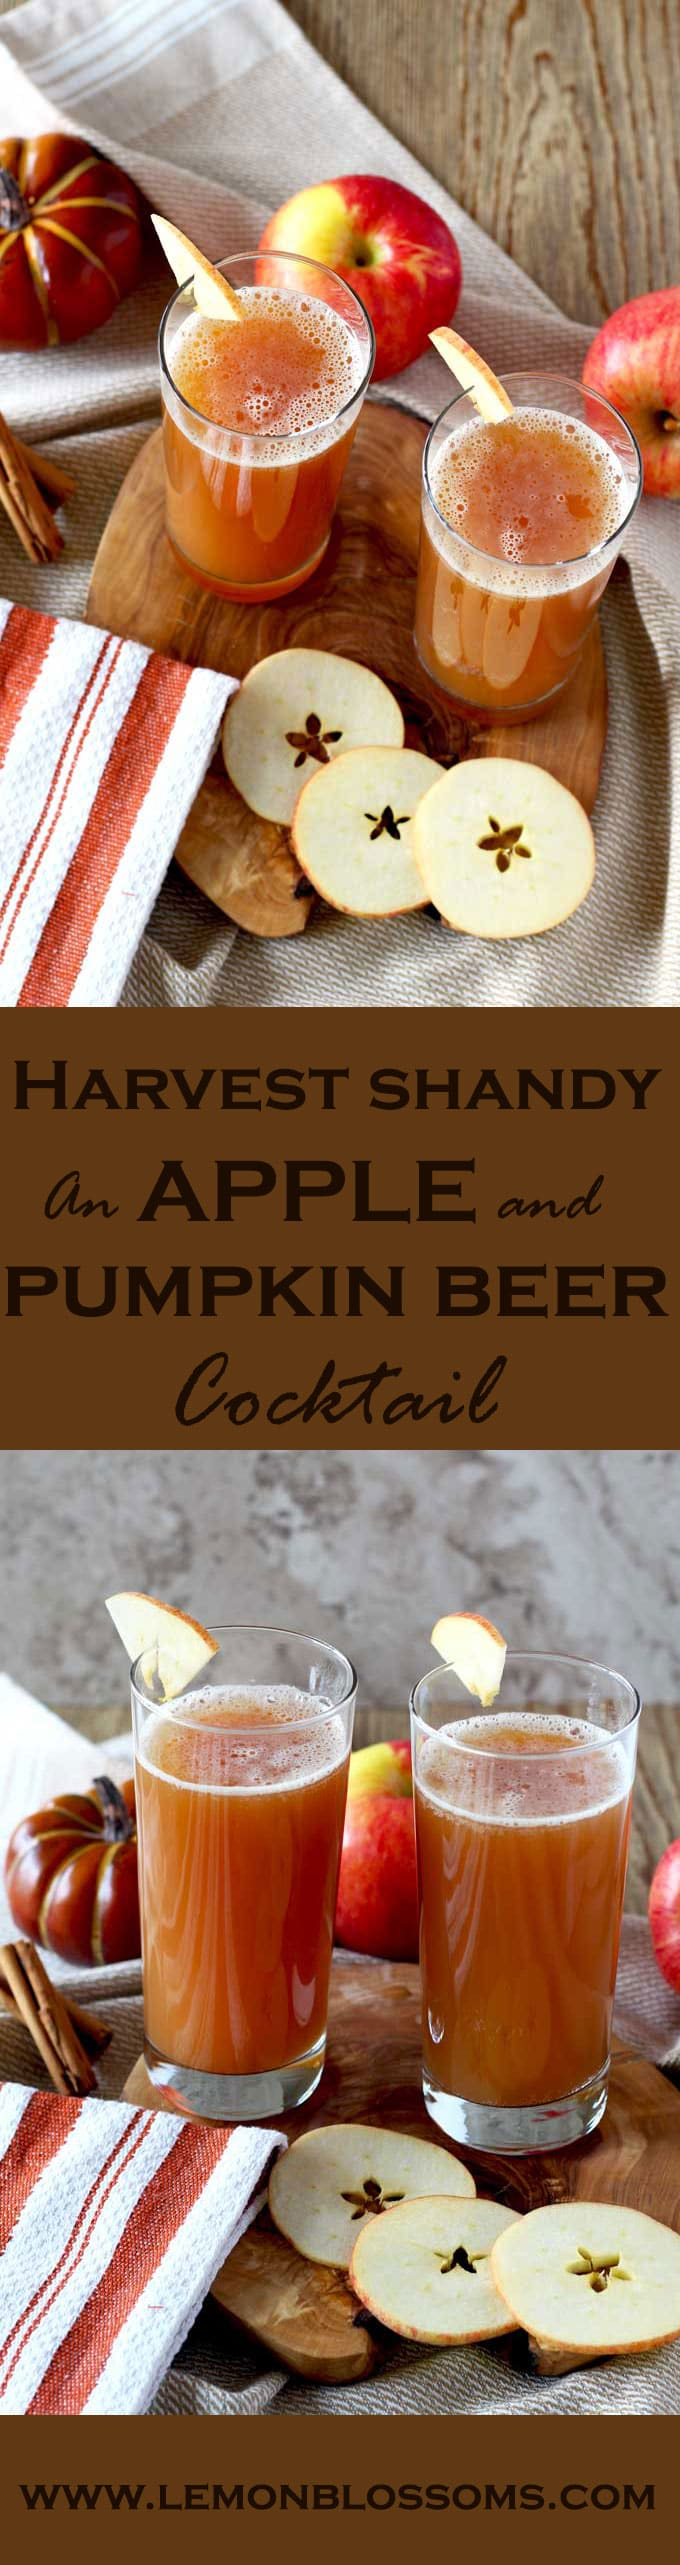 Harvest Shandy, spiced apple cider and pumpkin beer are the perfect combination for this easy 2 ingredients cocktail